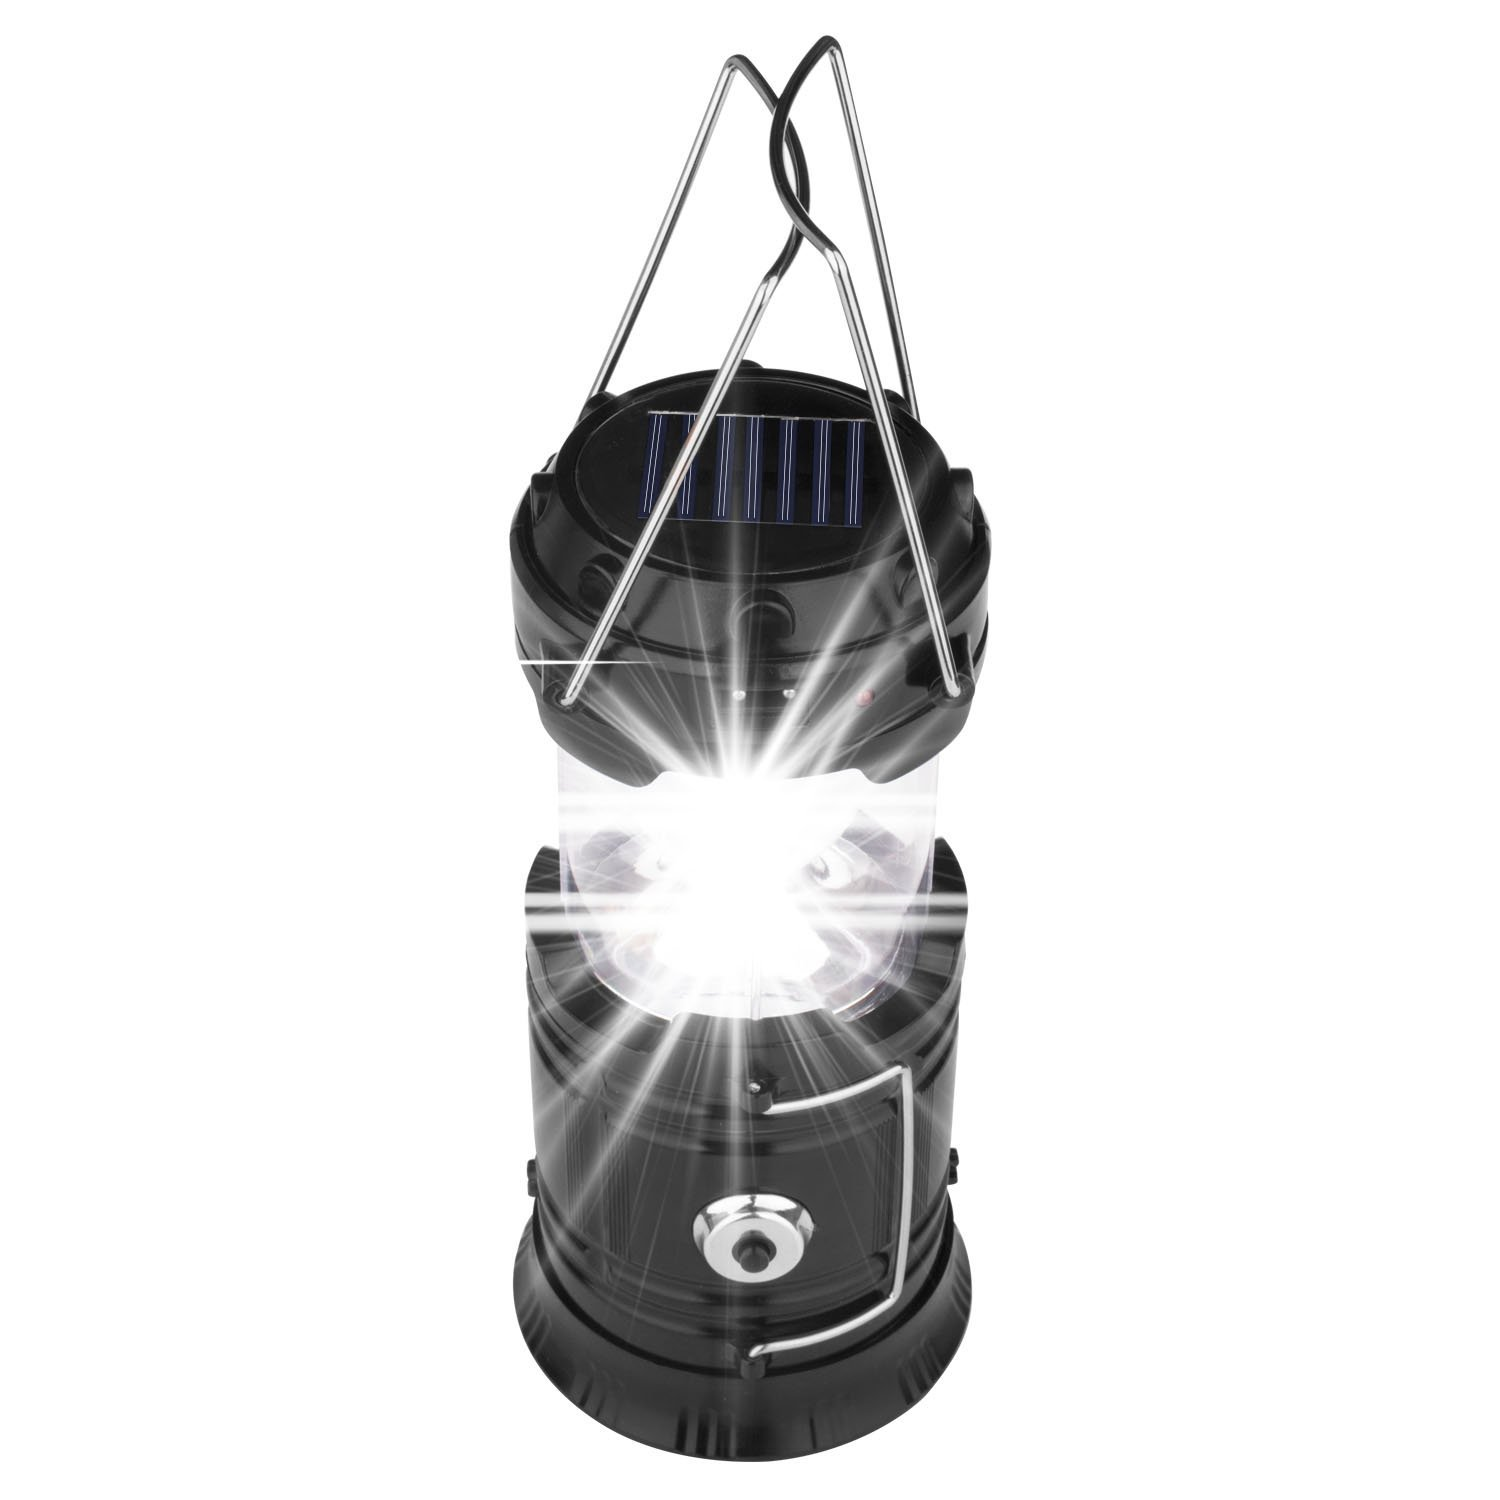 Yulan Outdoor LED Camping Lantern Light Portable Hanging Solar Tent Lamp Rechargeable for Hiking and Hurricane